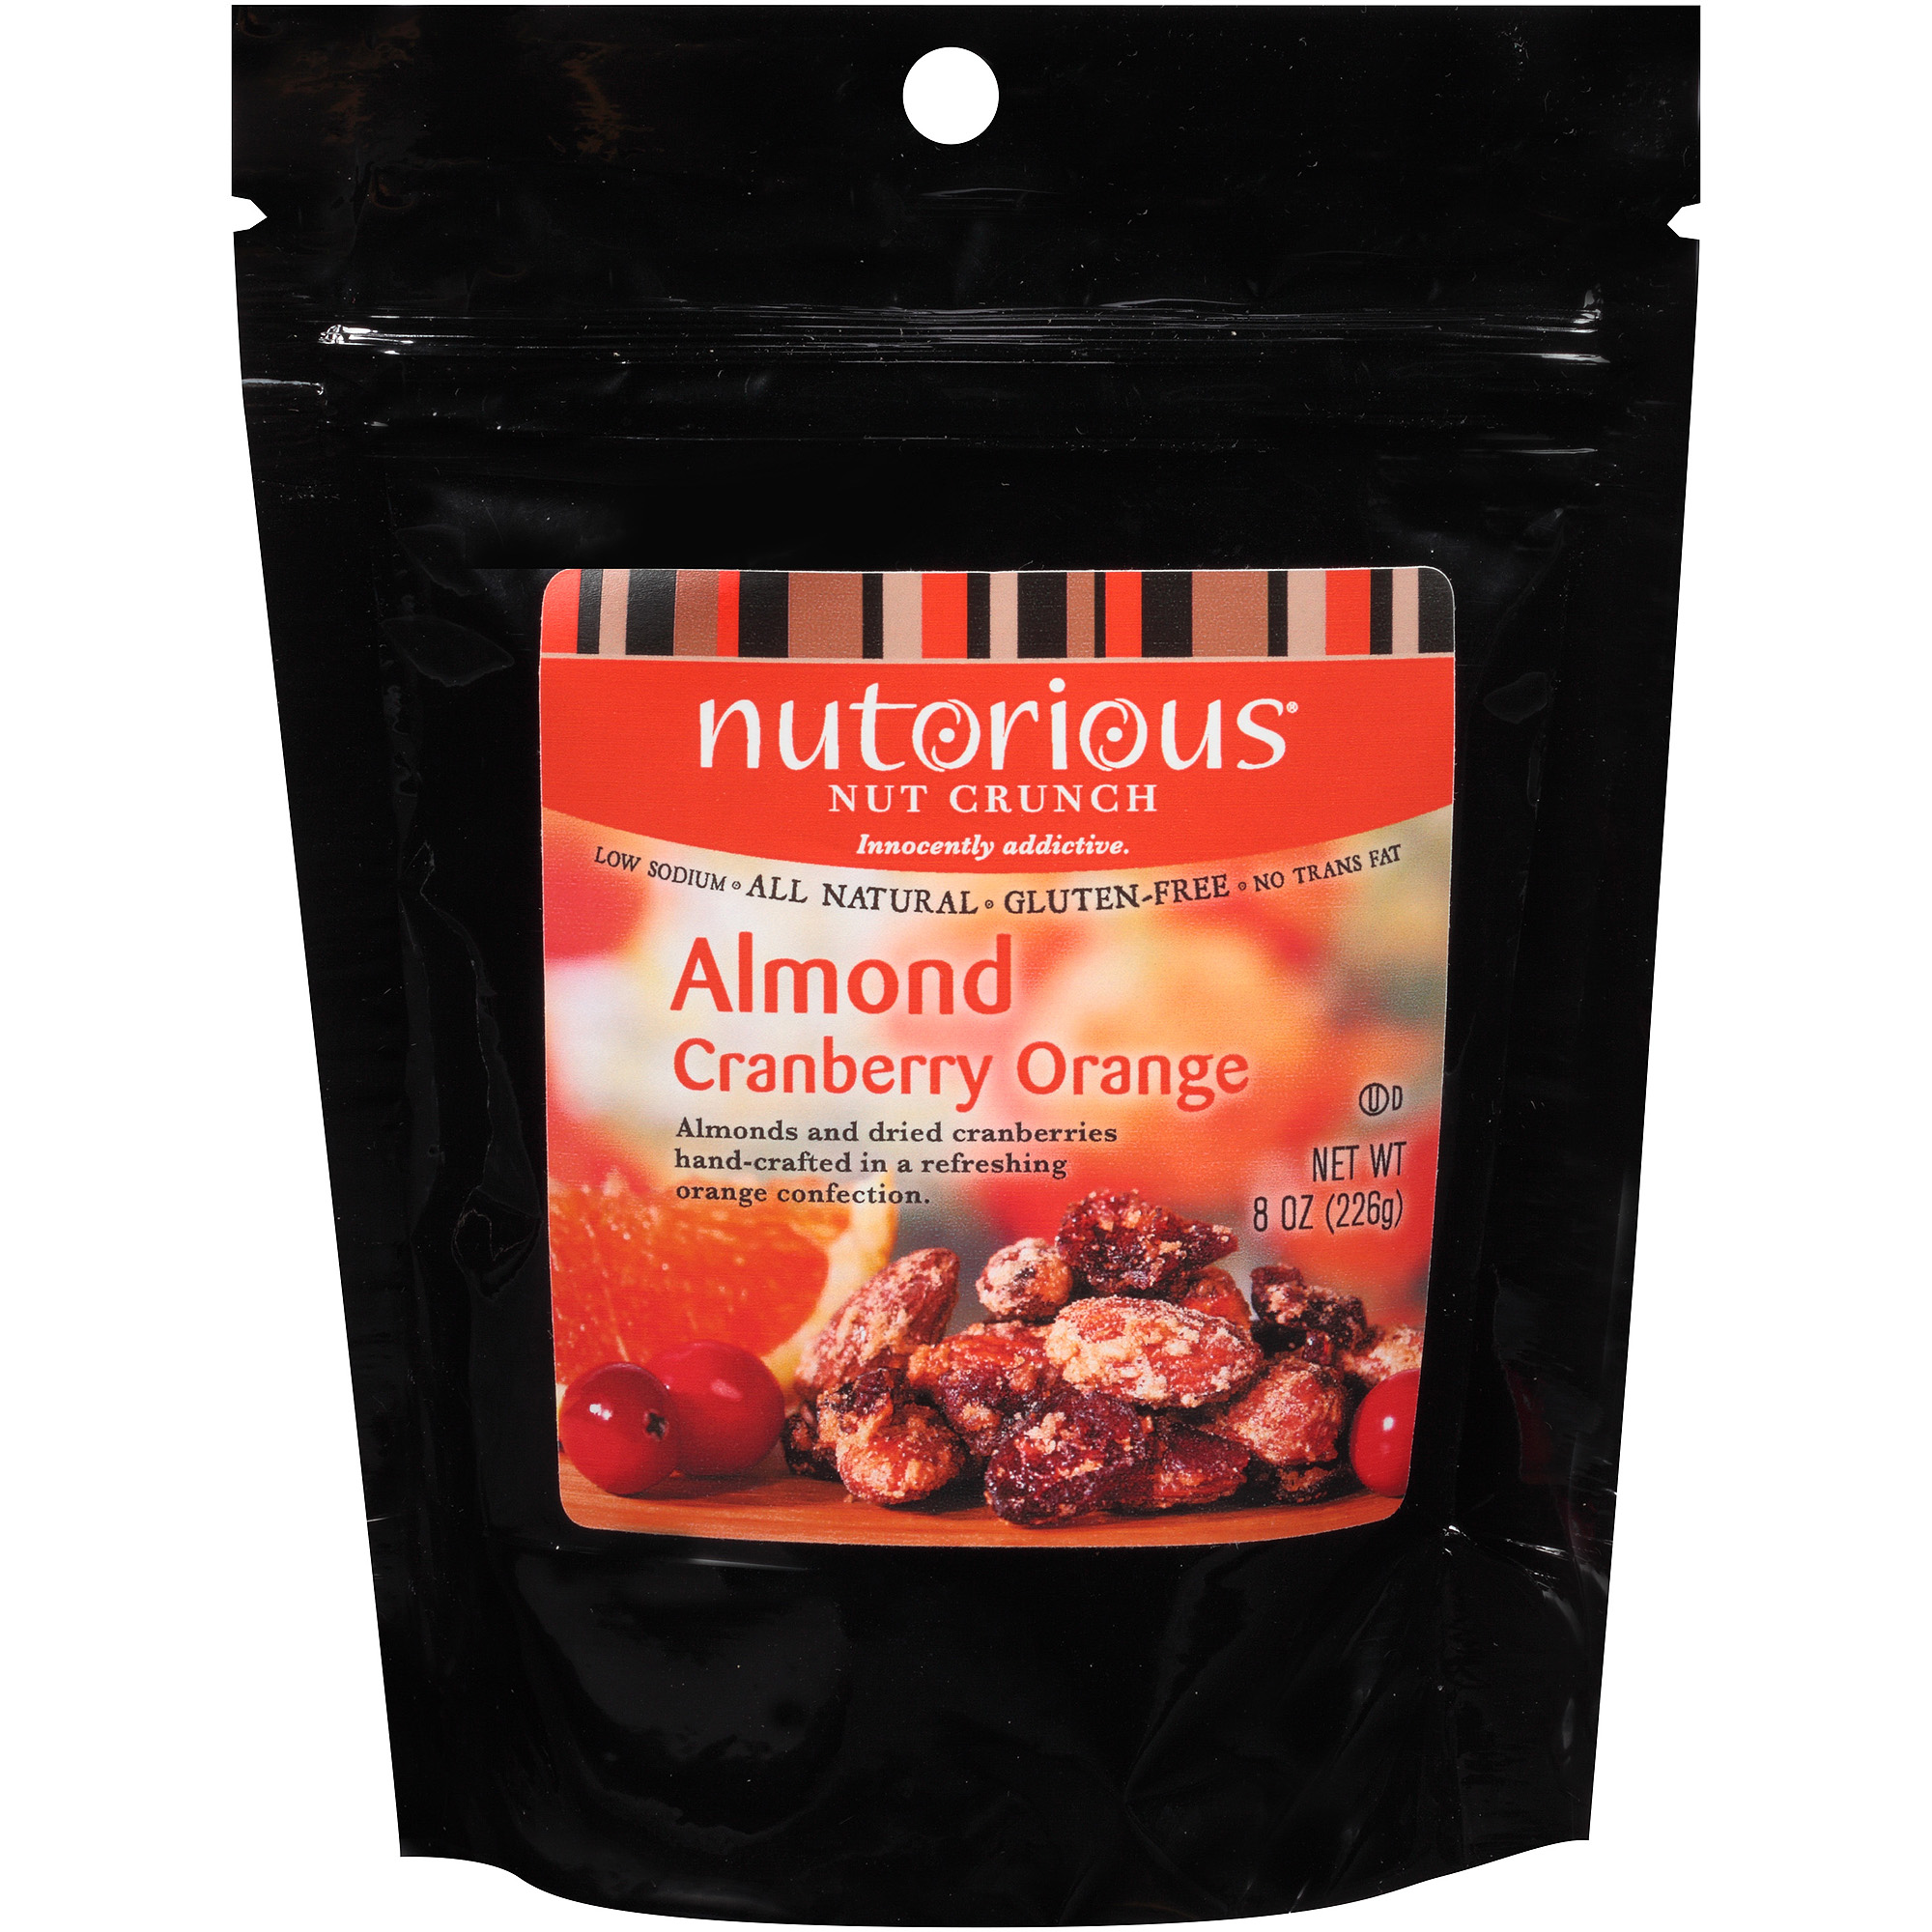 Nutorious Almond Cranberry Orange Nut Crunch, 8 oz